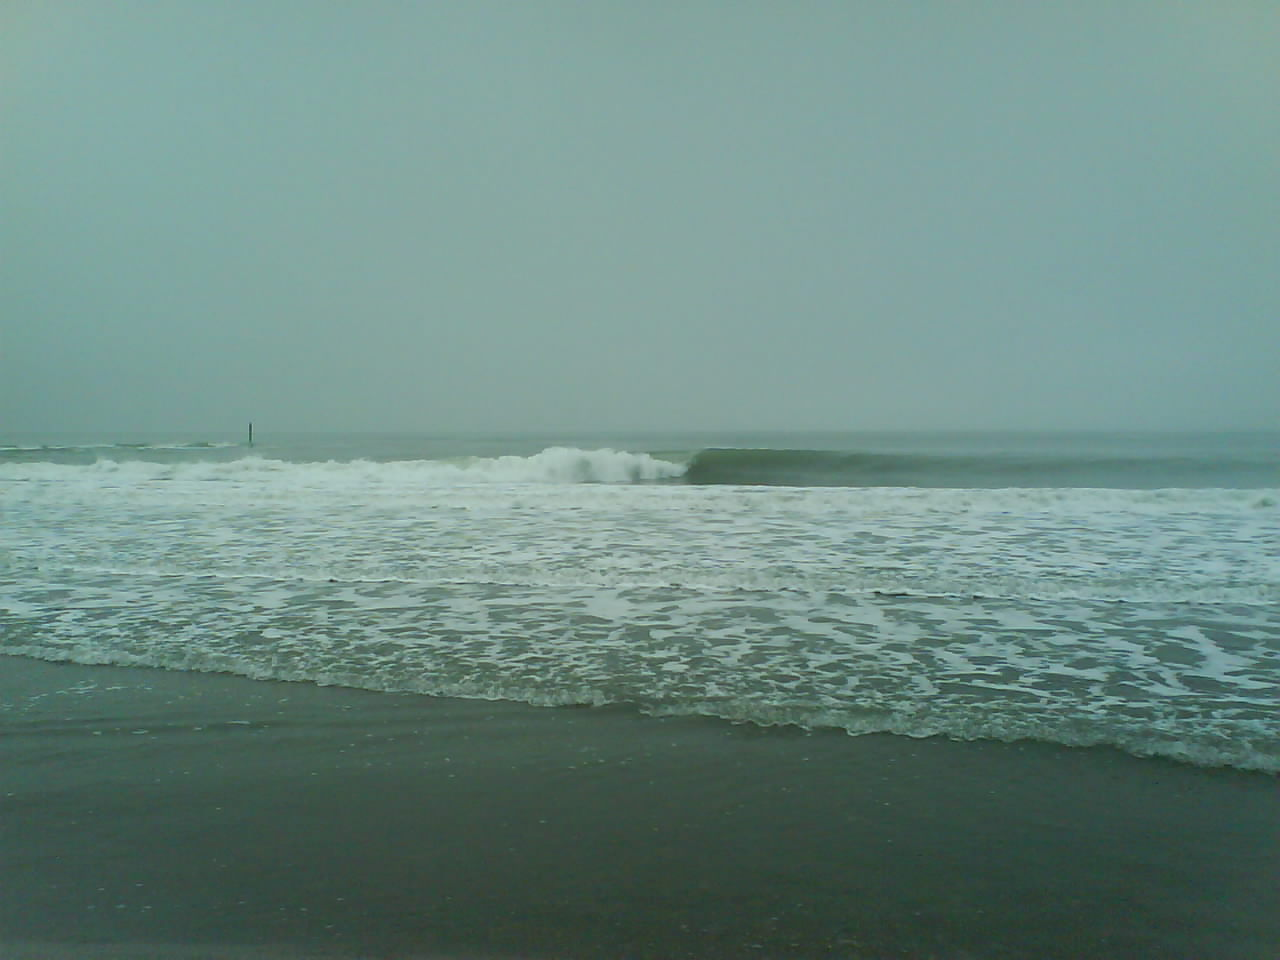 Bagno Jamaica Lido Di Spina Surf Project Surf In Emilia Romagna Posti Dove Fare Surf In